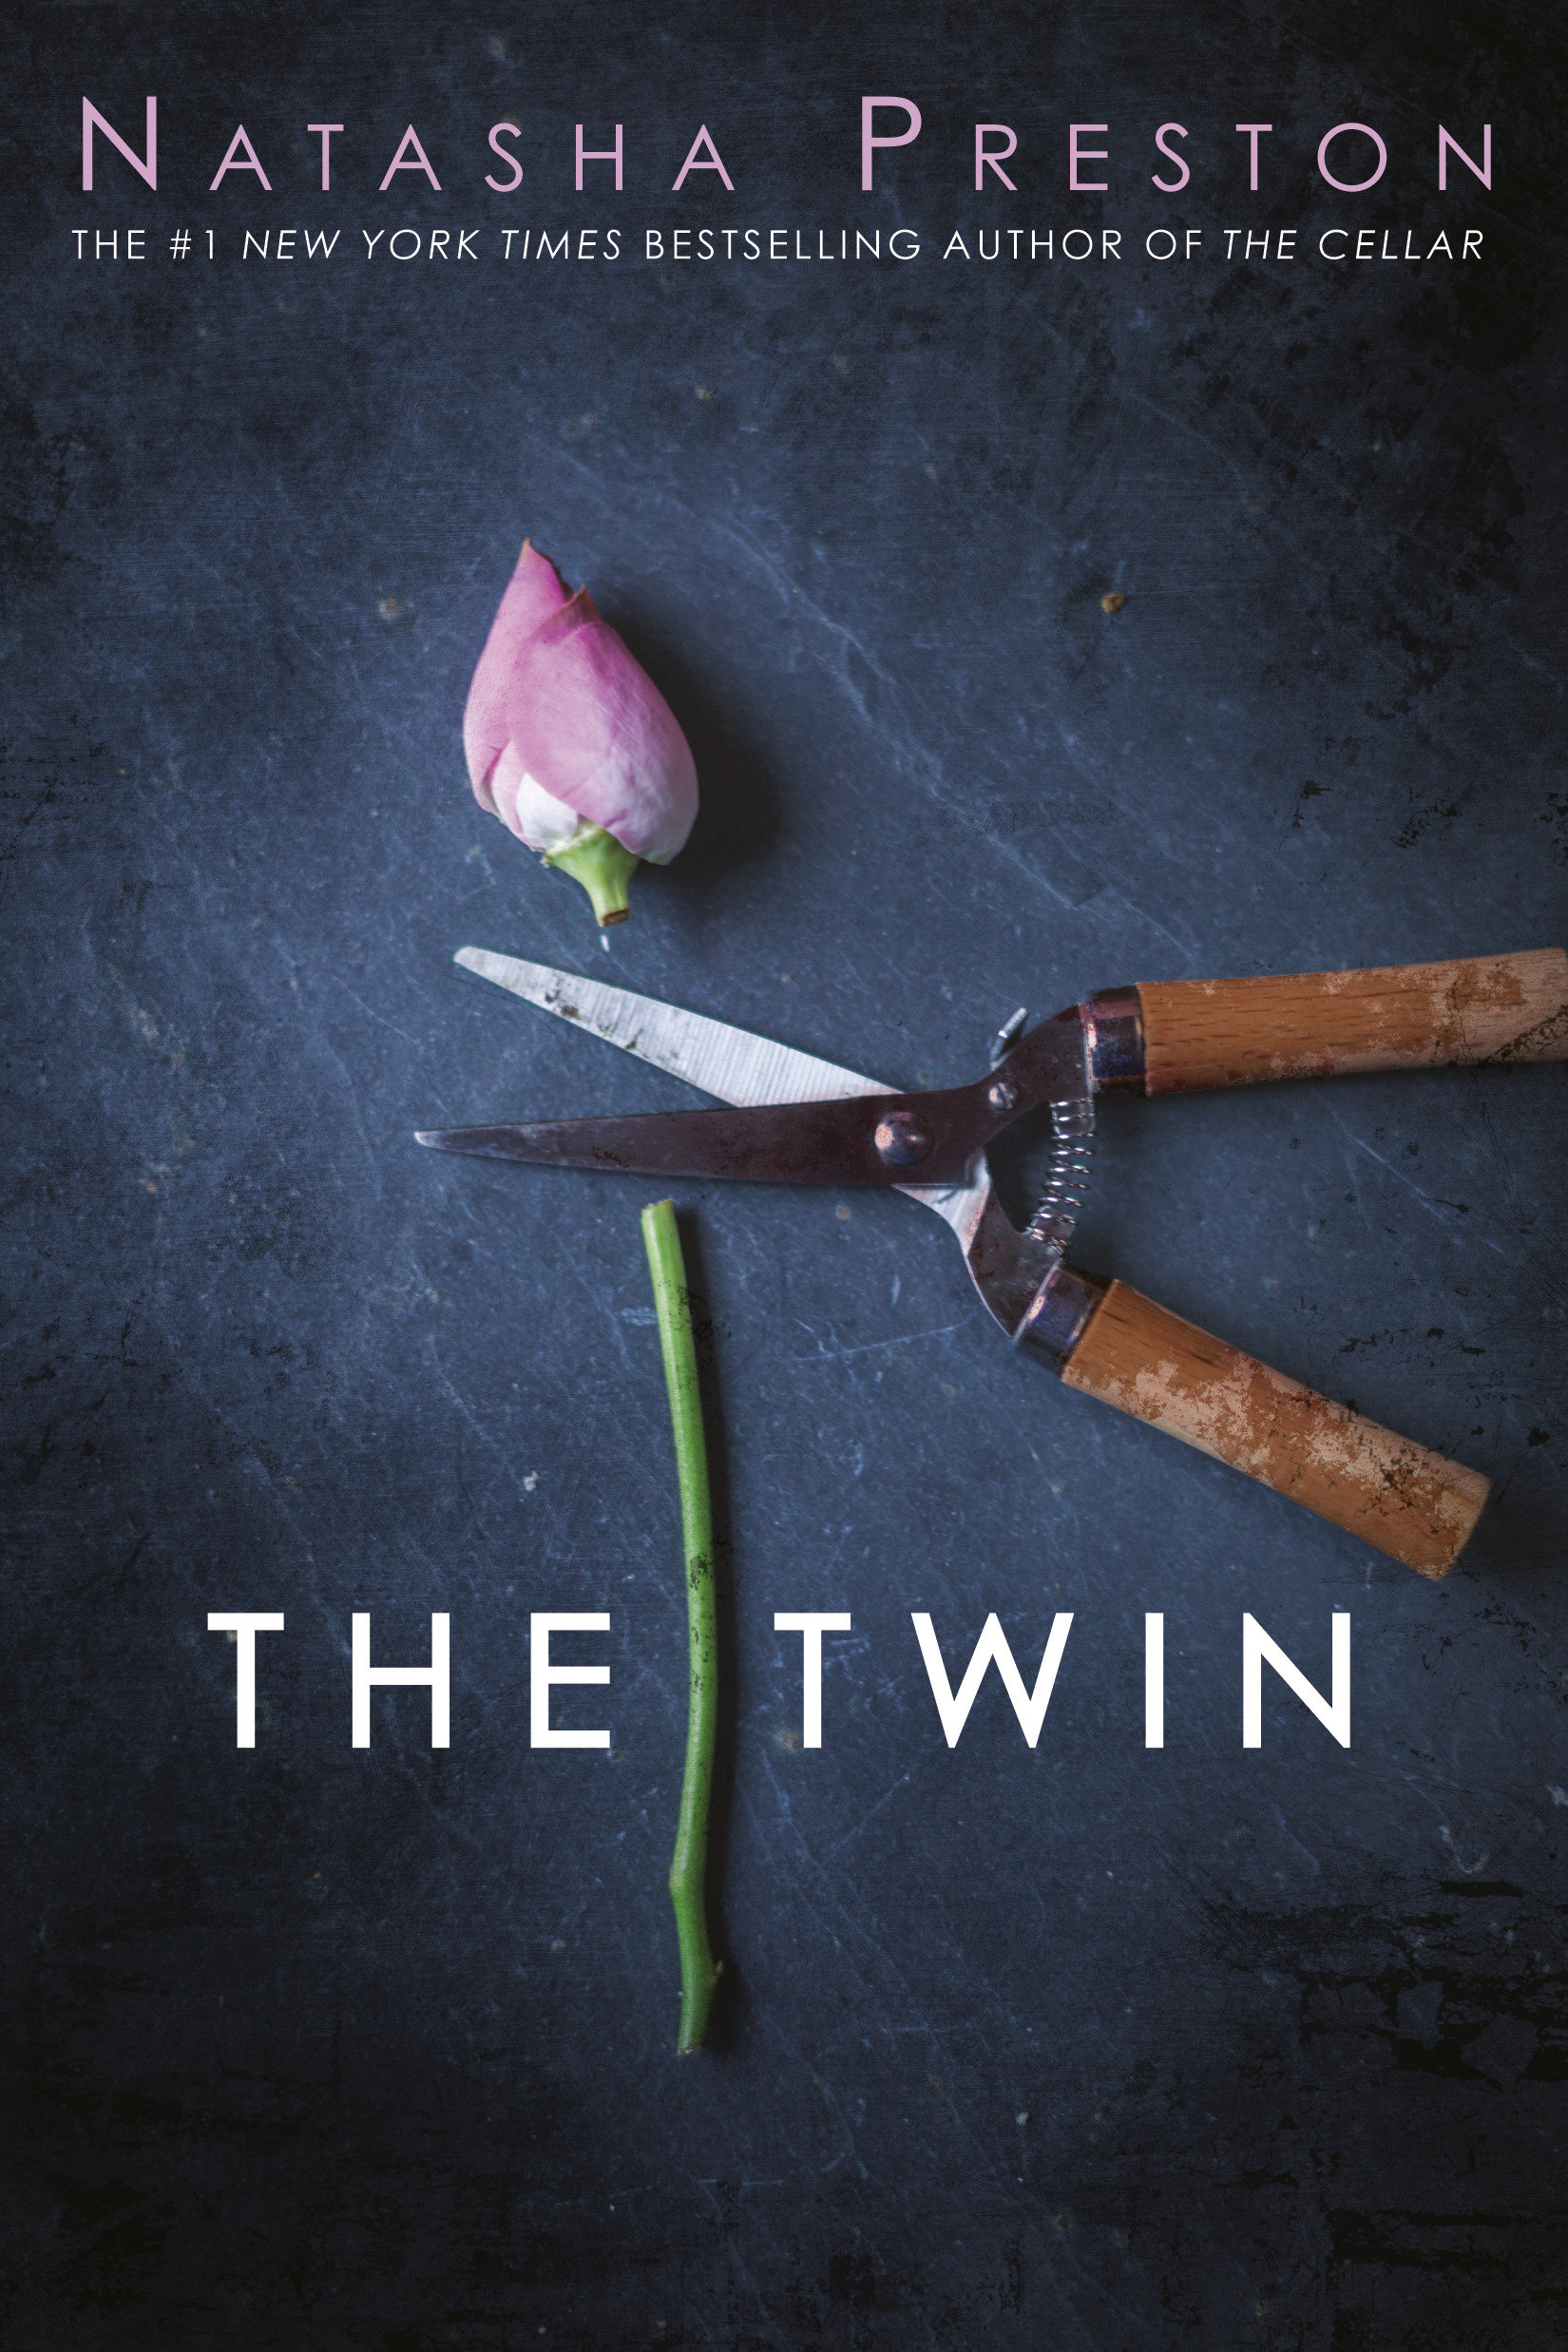 The twin cover image